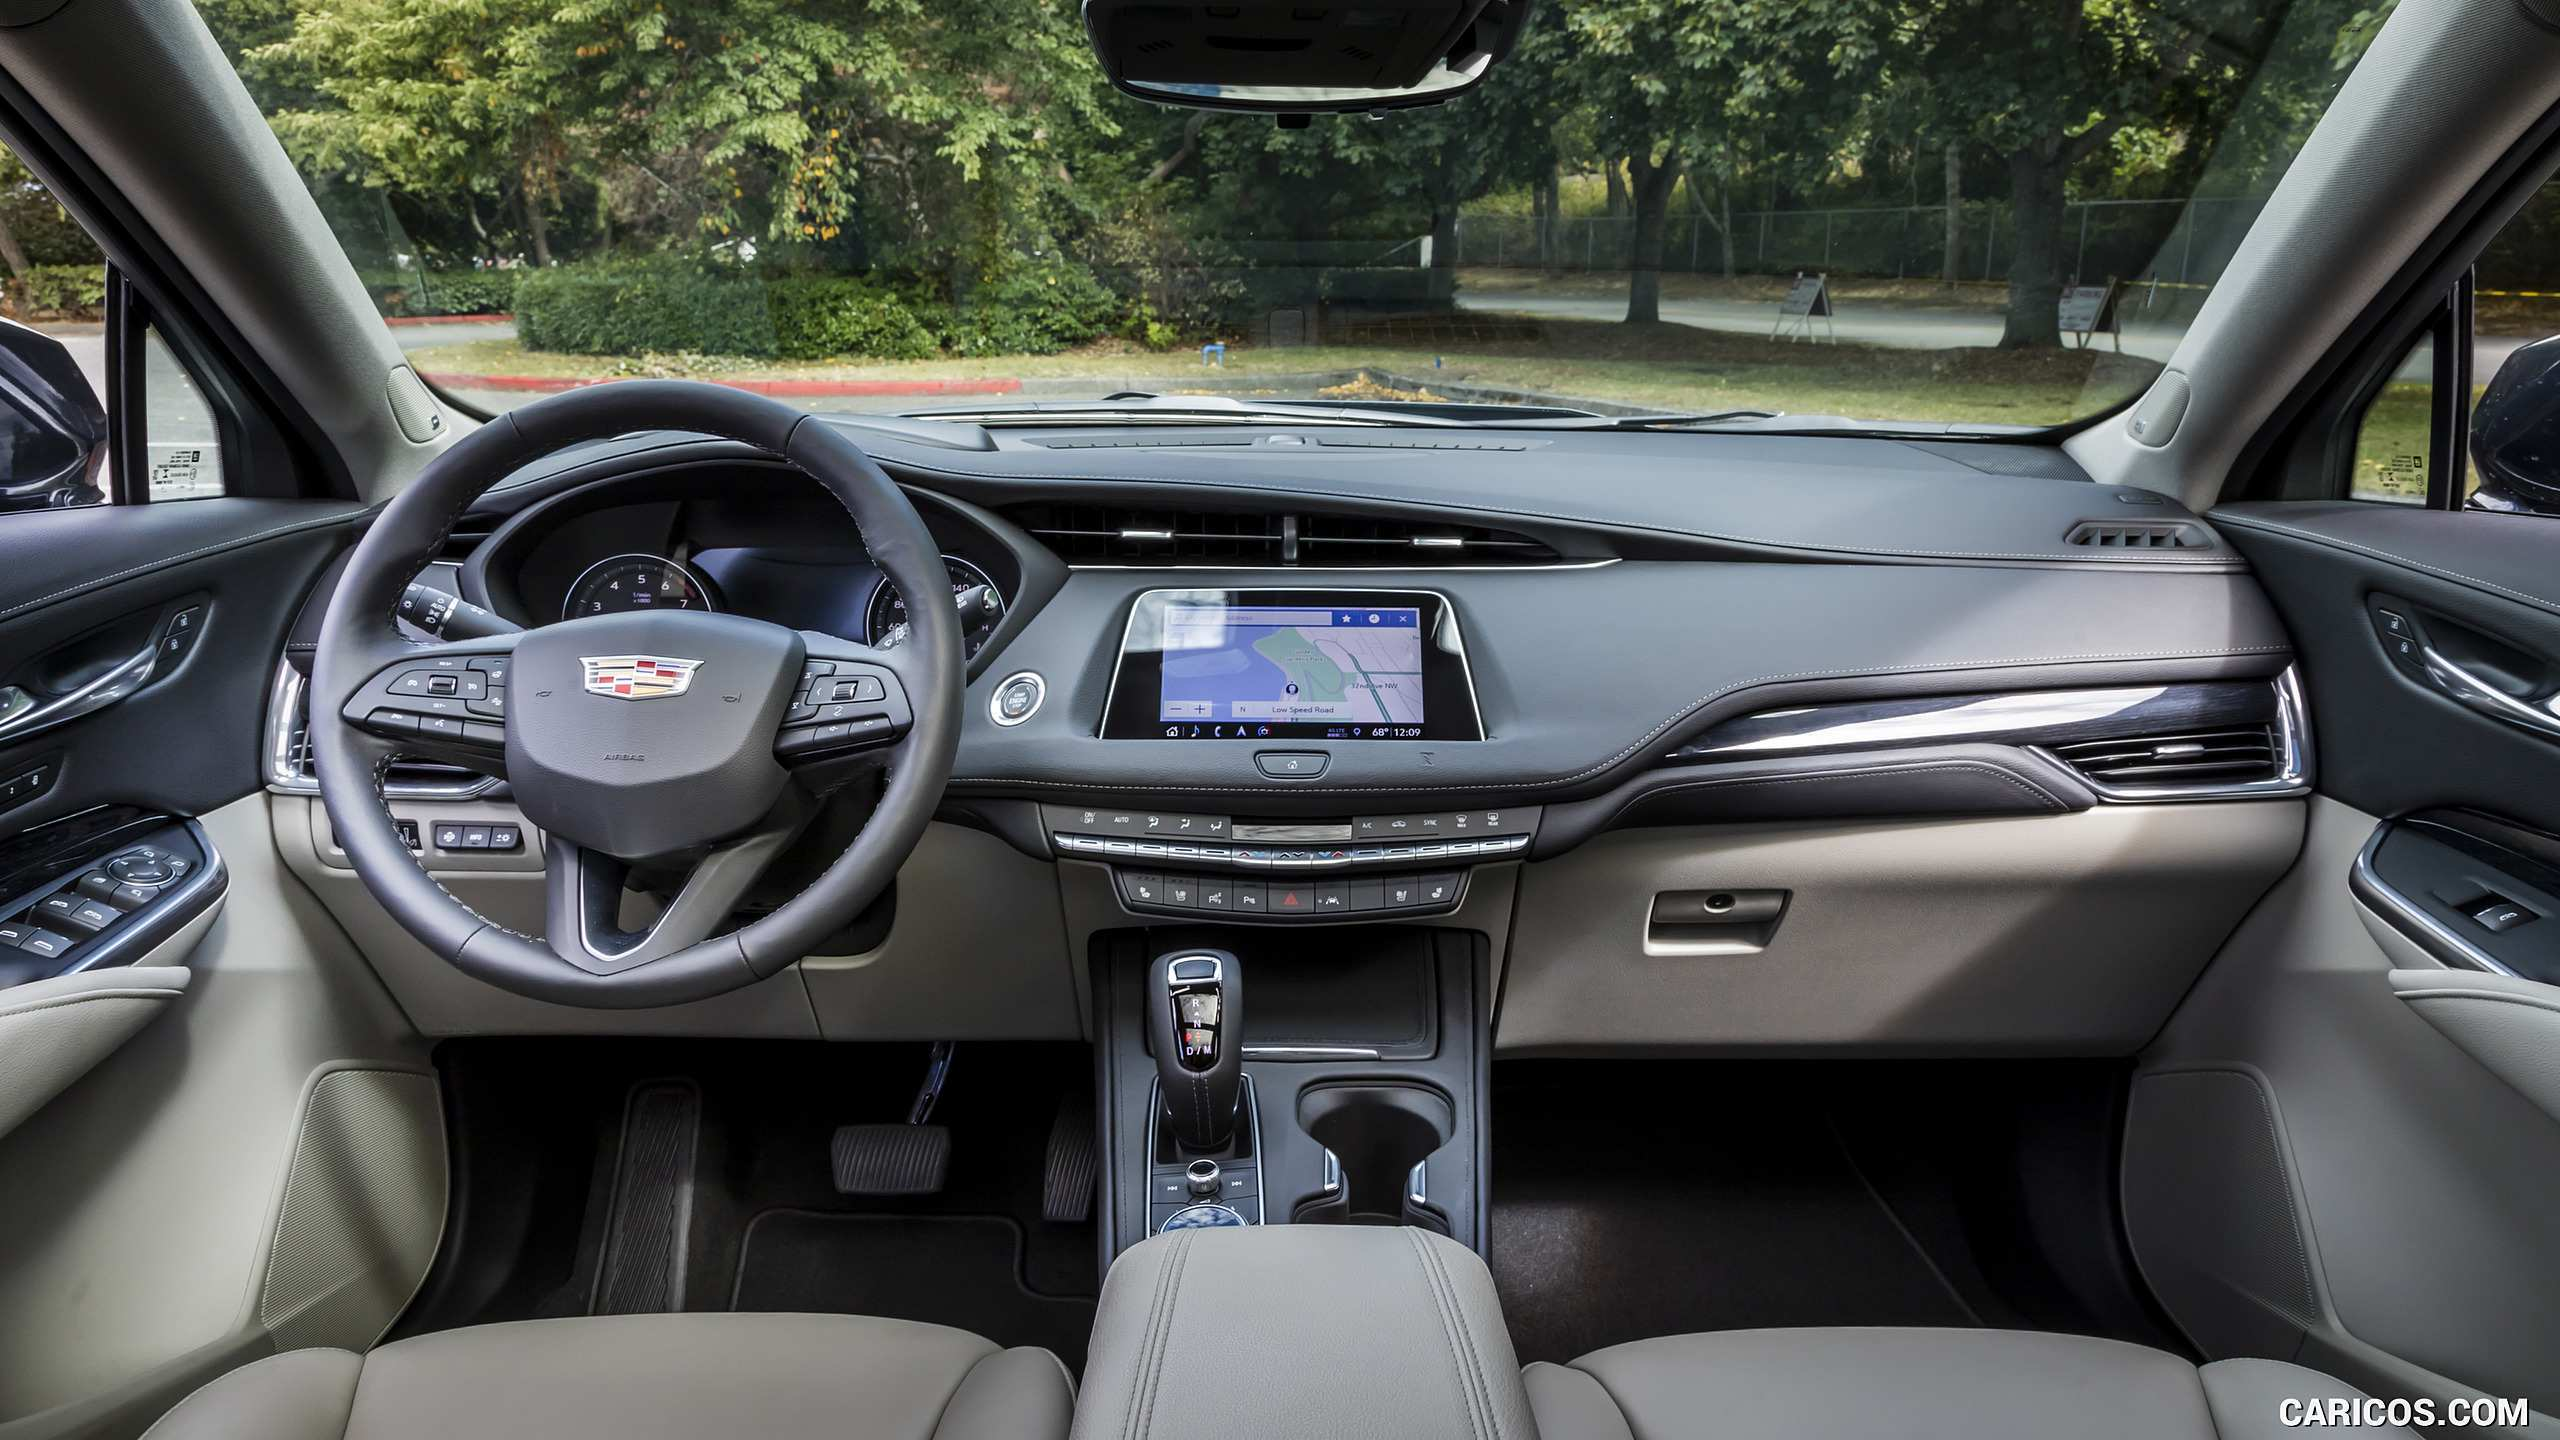 14 All New 2019 Cadillac Interior Performance and New Engine for 2019 Cadillac Interior